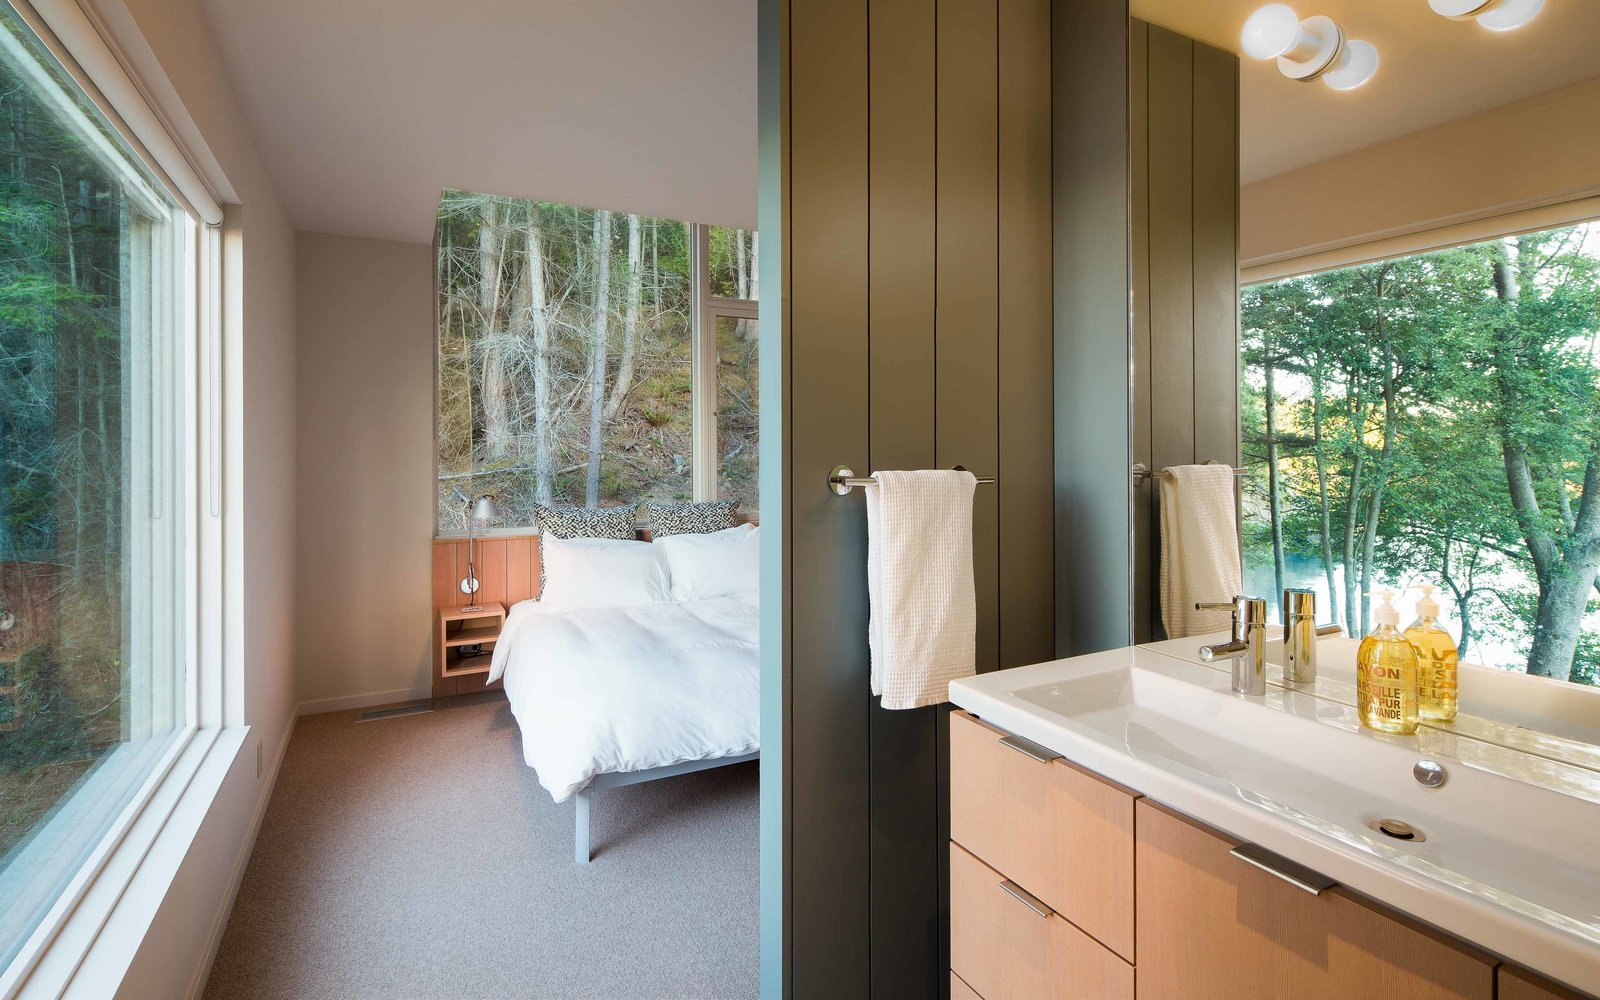 Bath Room A Design Within Reach bed is steps away from a Second Floor sink by Duravit that's outfitted with an Essence Grohe faucet. Benjamin Moore's Templeton Gray is painted on the master bathroom's wood paneling.  San Juan Islands Residence by Kelly Dawson